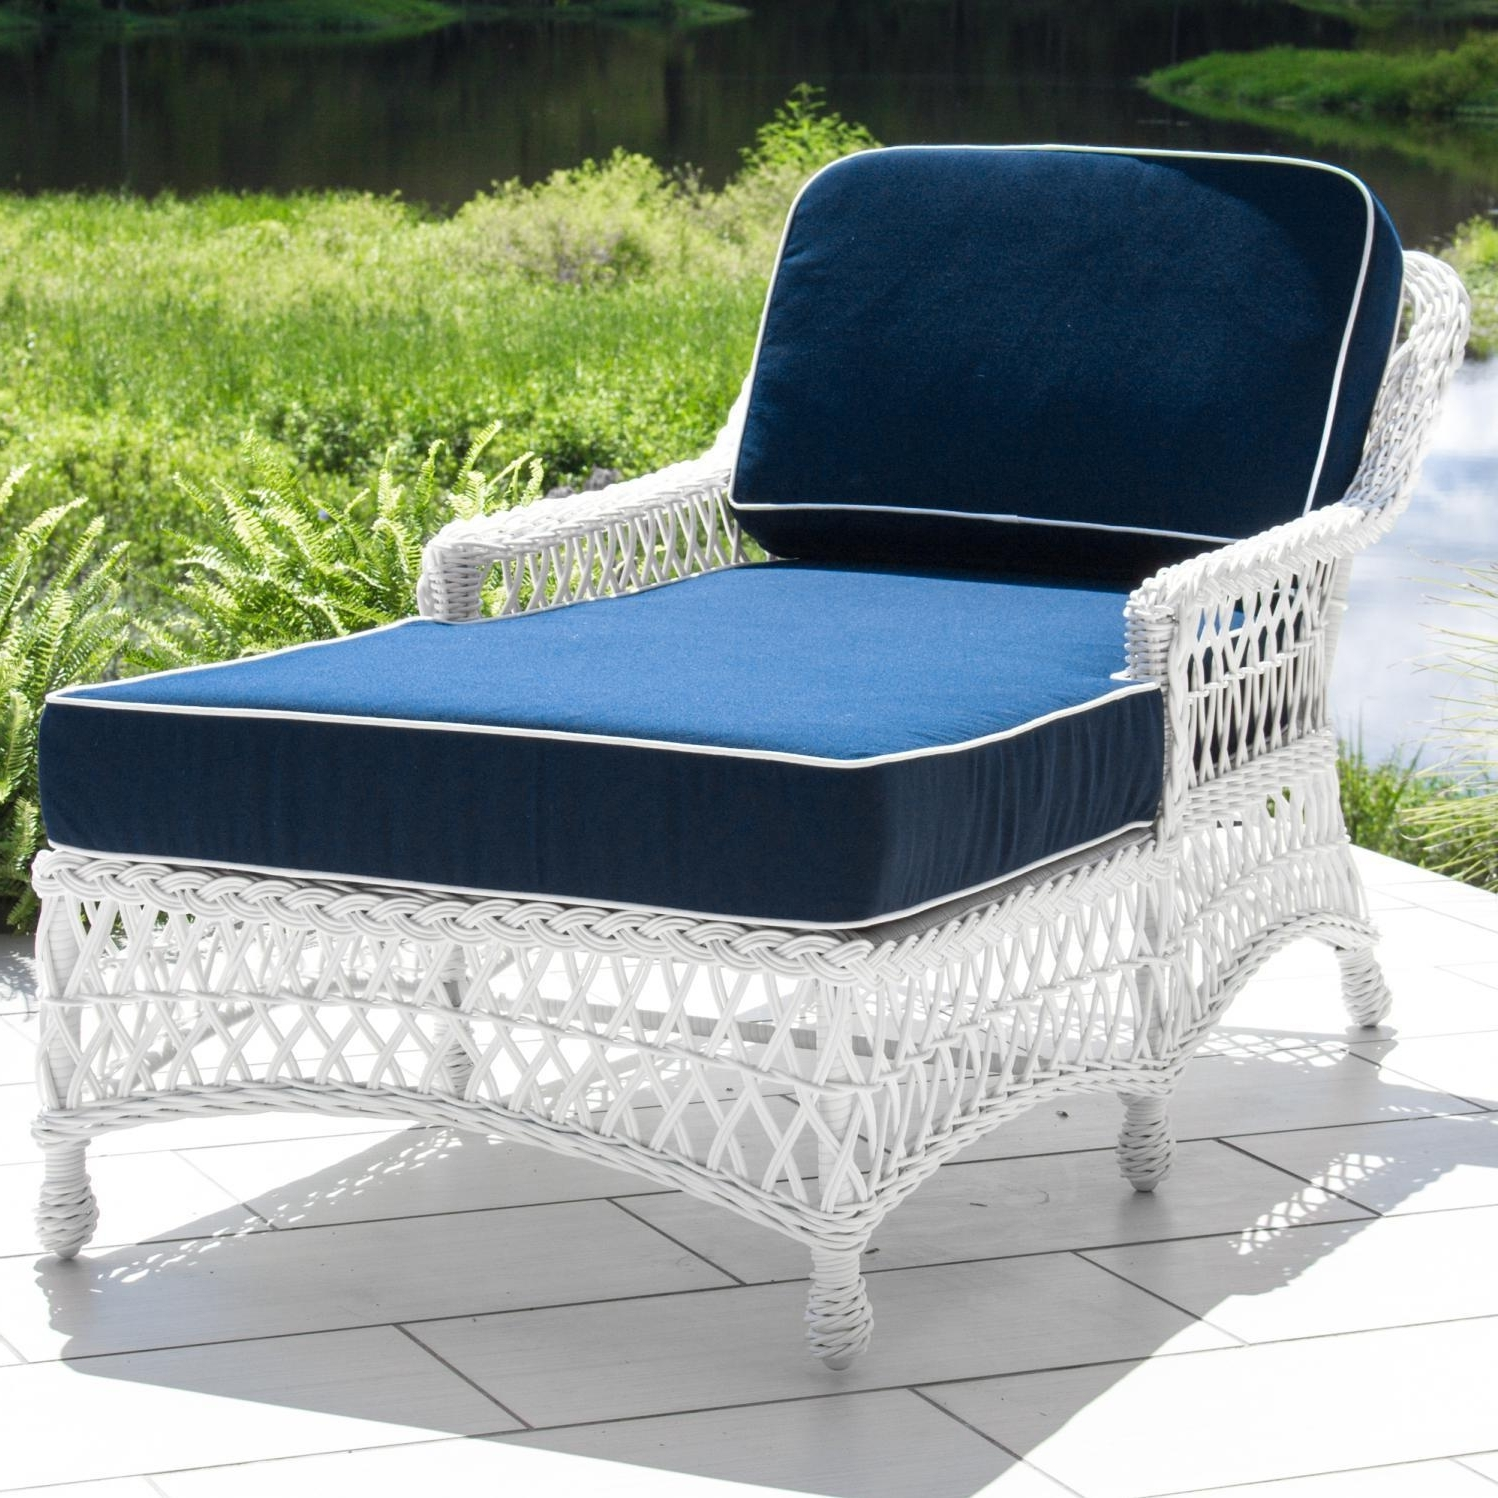 Most Recently Released Outdoor : Affordable Chaise Lounges Chaise Lounge Patio Furniture Inside Outdoor Wicker Chaise Lounges (View 13 of 15)